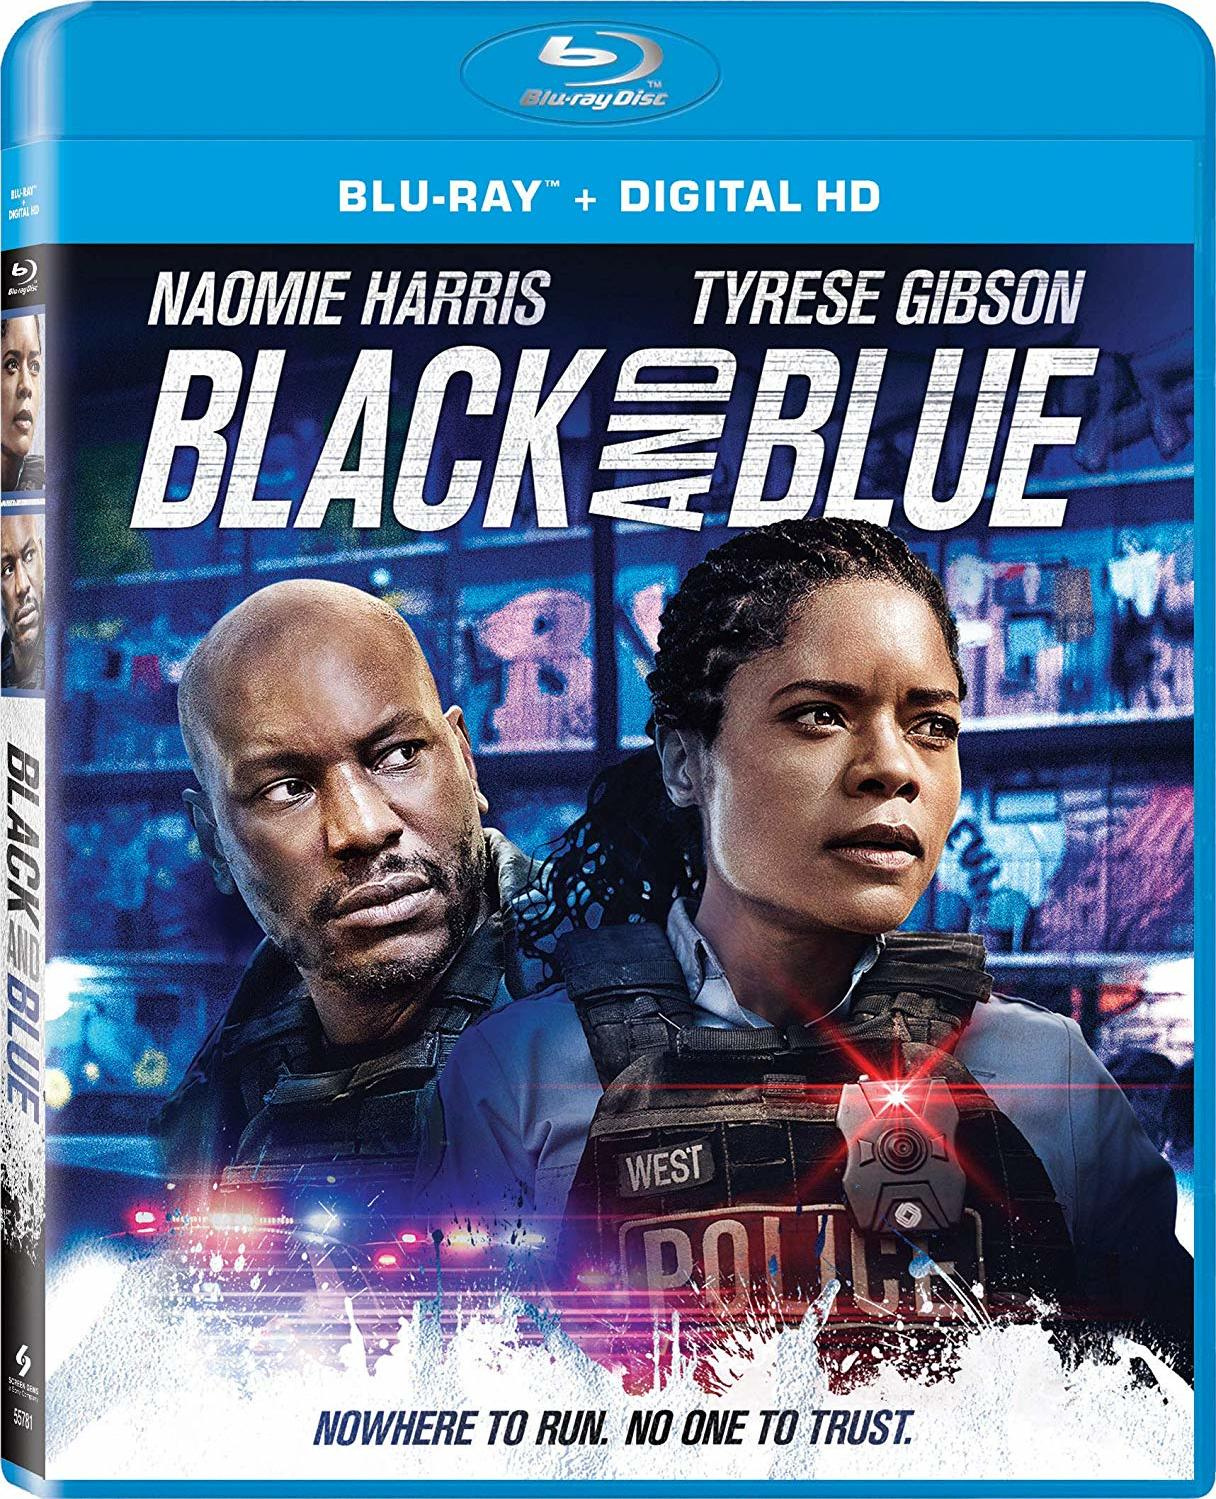 Black and Blue Blu-ray